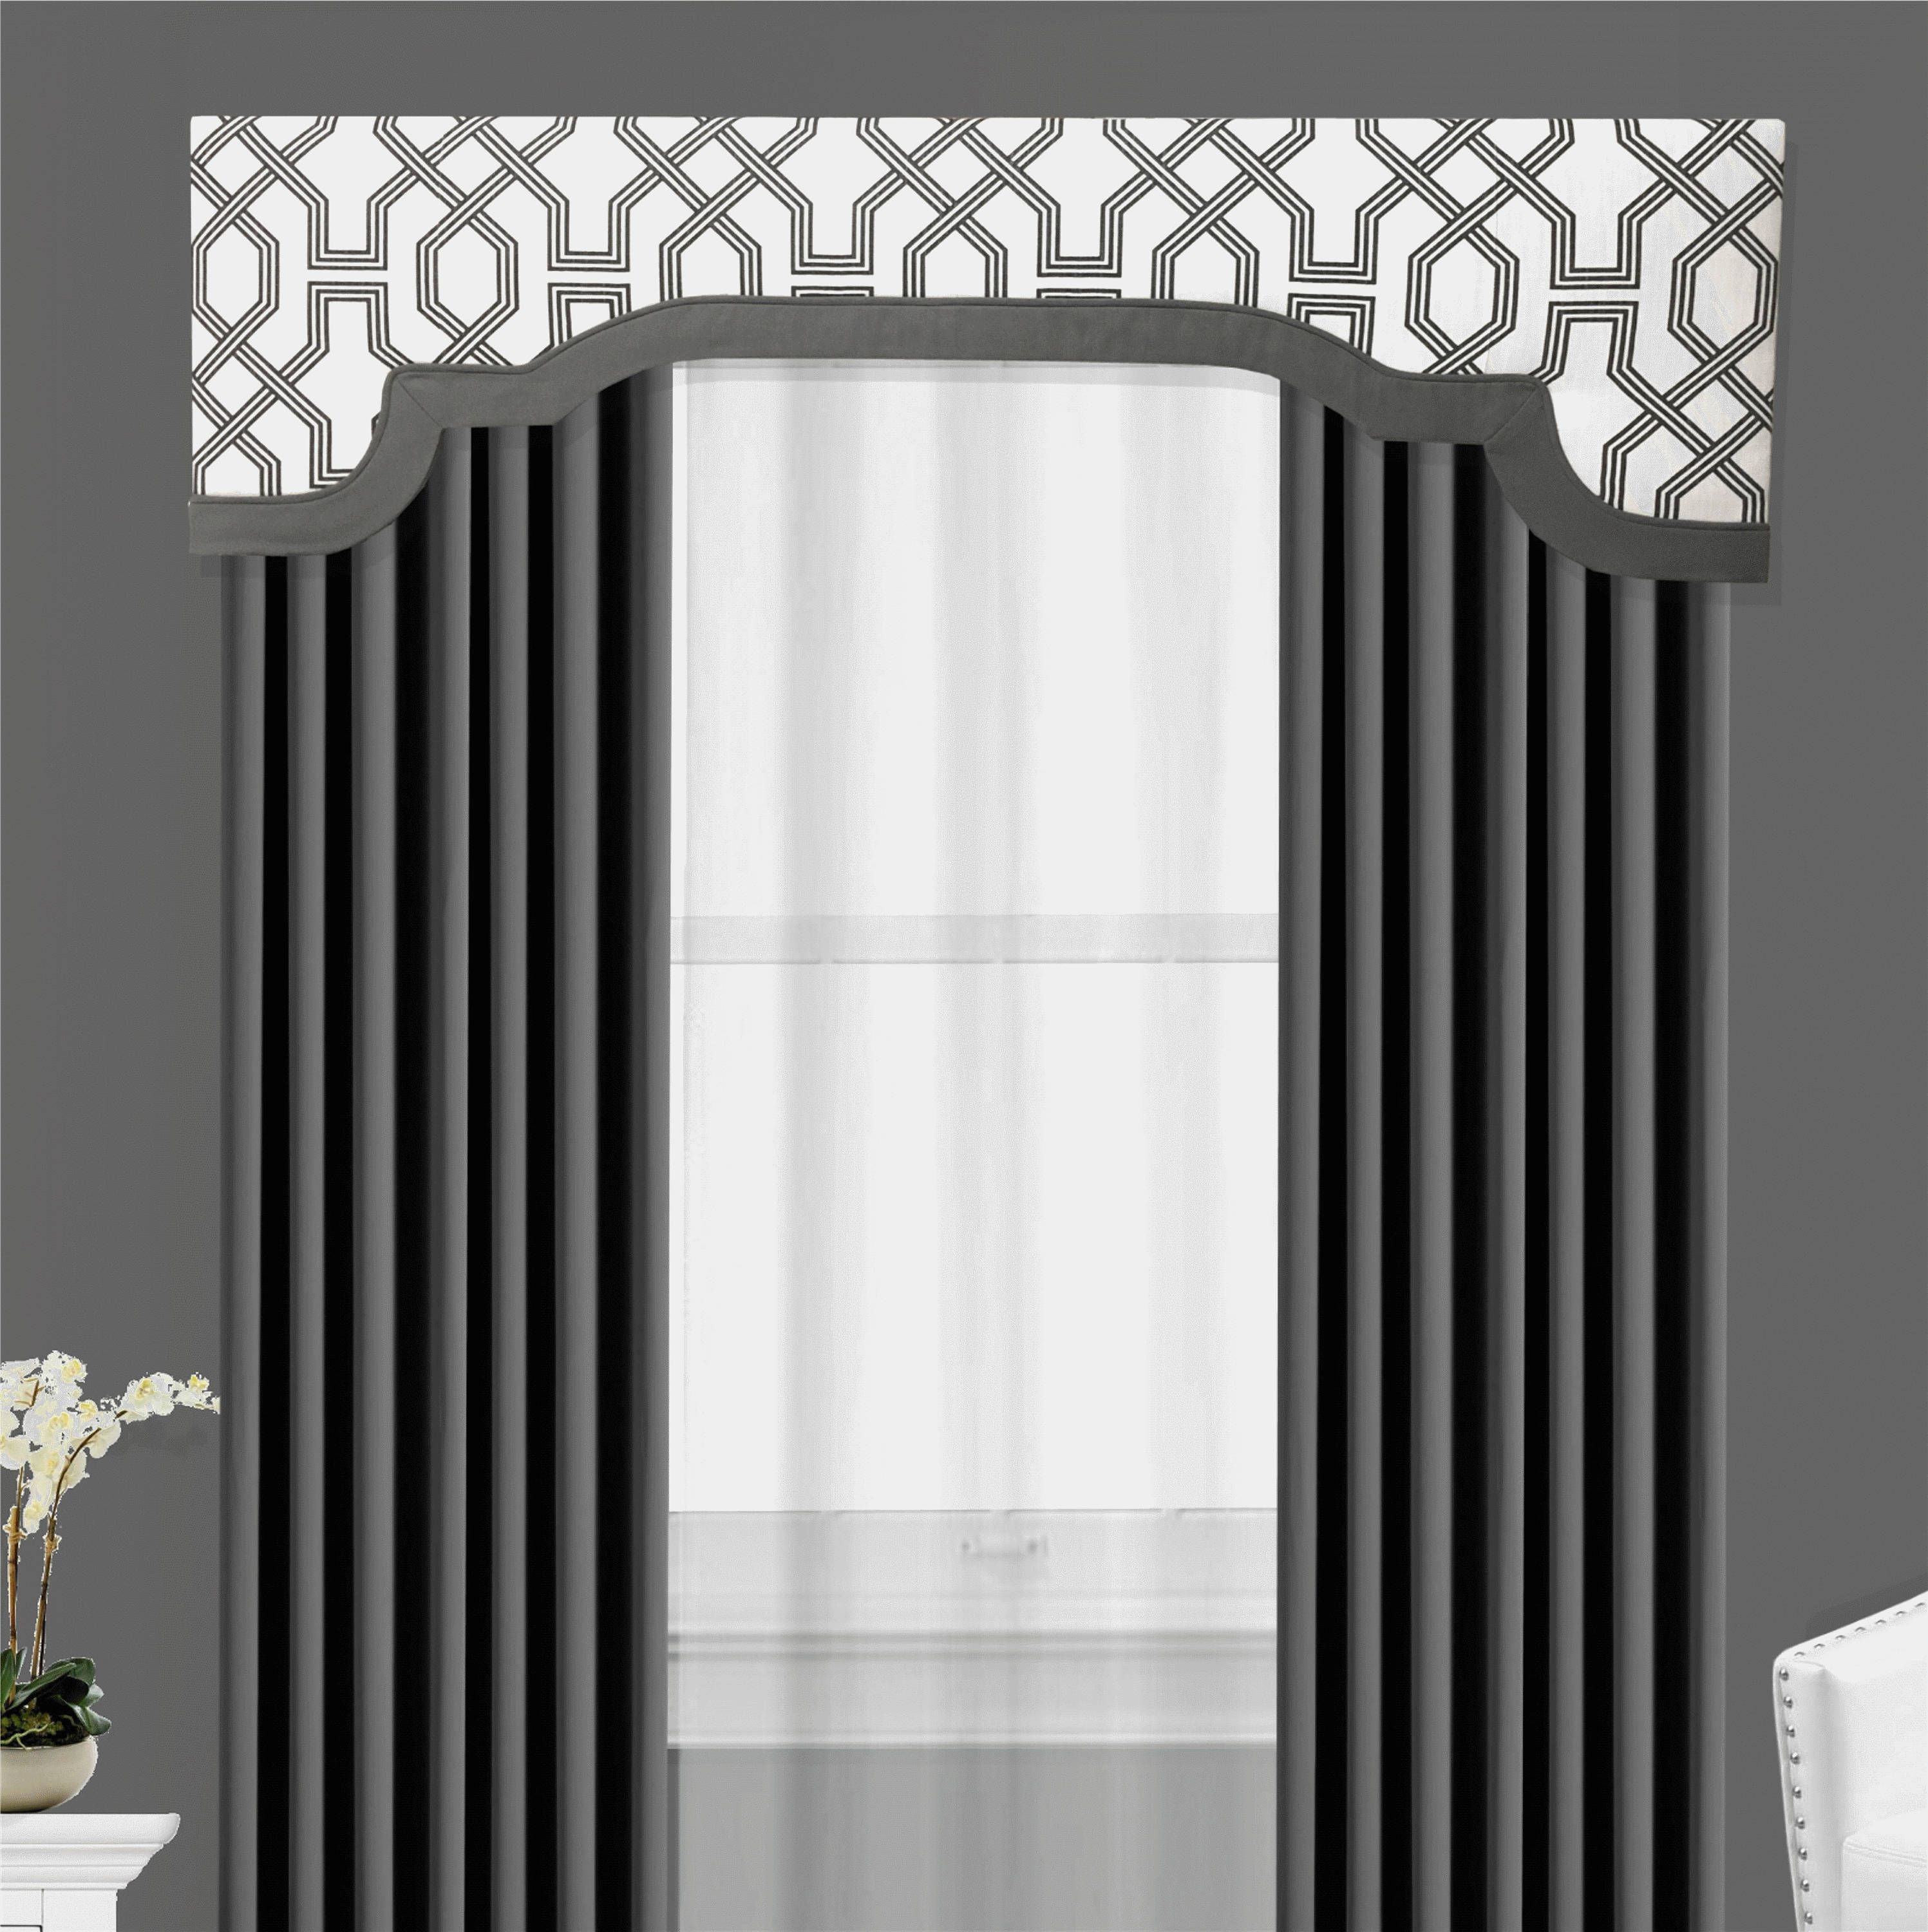 Window Cornice Board Valance Box Banded Cornices By Designer Homes In Scott S Living Ander Graphite Gray Luxe Linen This Modern